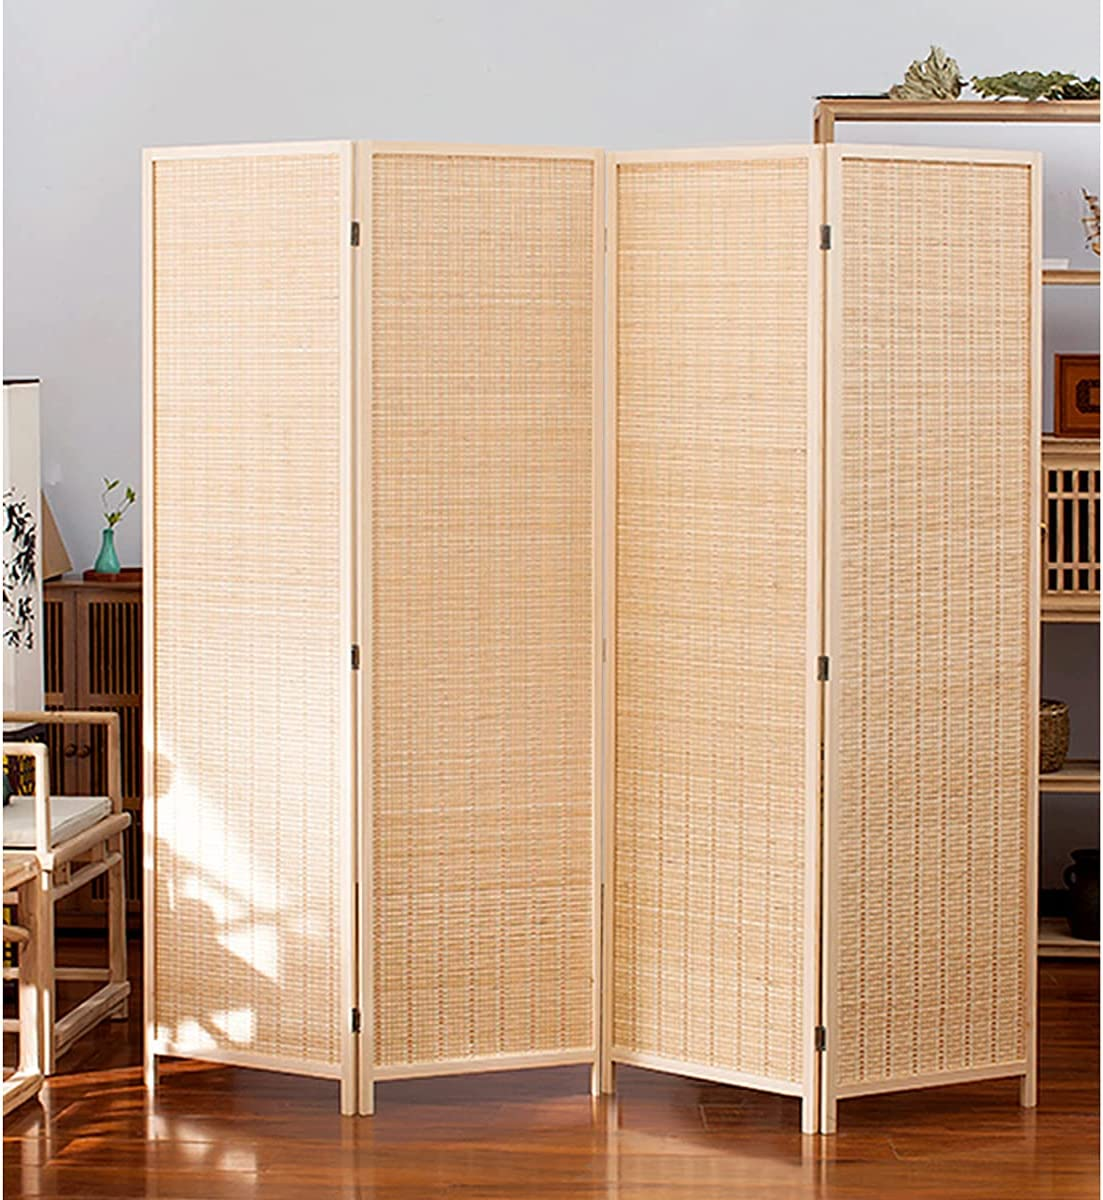 TinyTimes 6 FT Tall New product! New type Bamboo Max 67% OFF Dividers Room Divider Panel 4